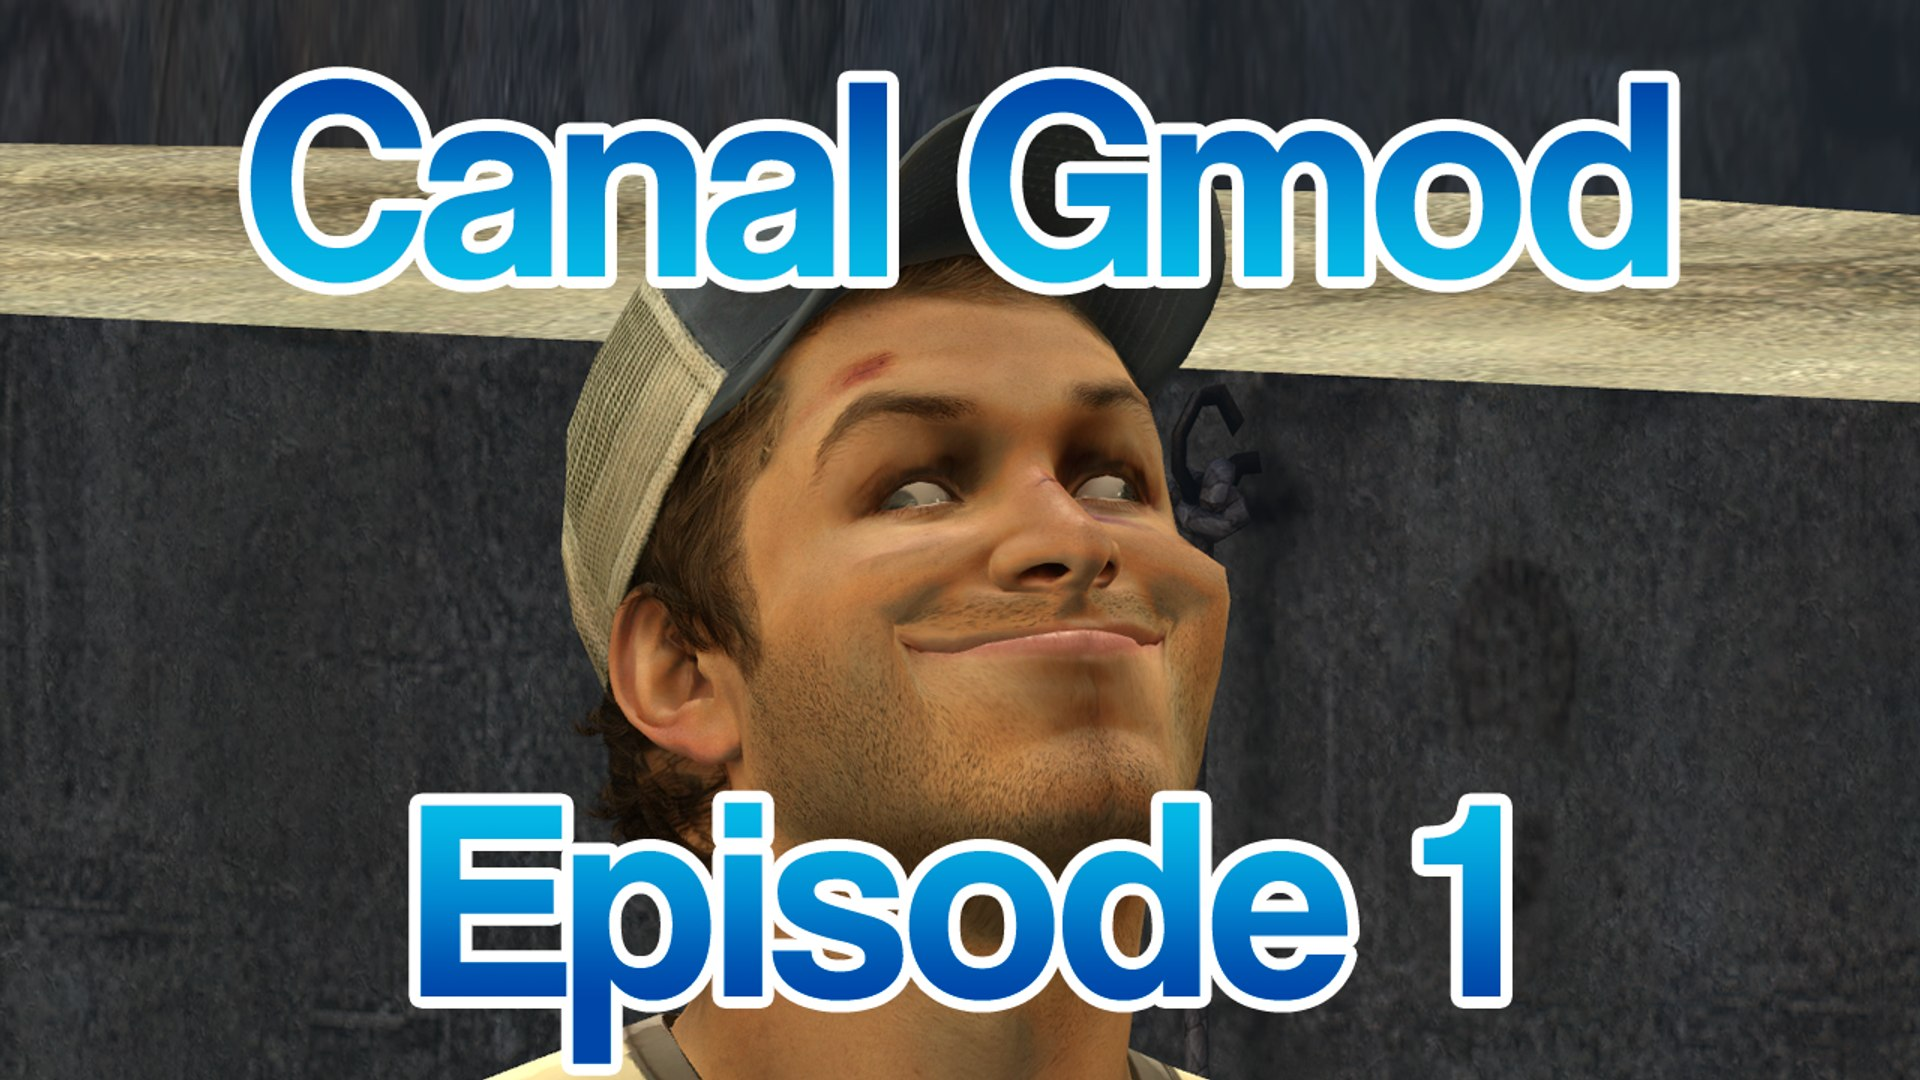 Canal Gmod: Episode 1